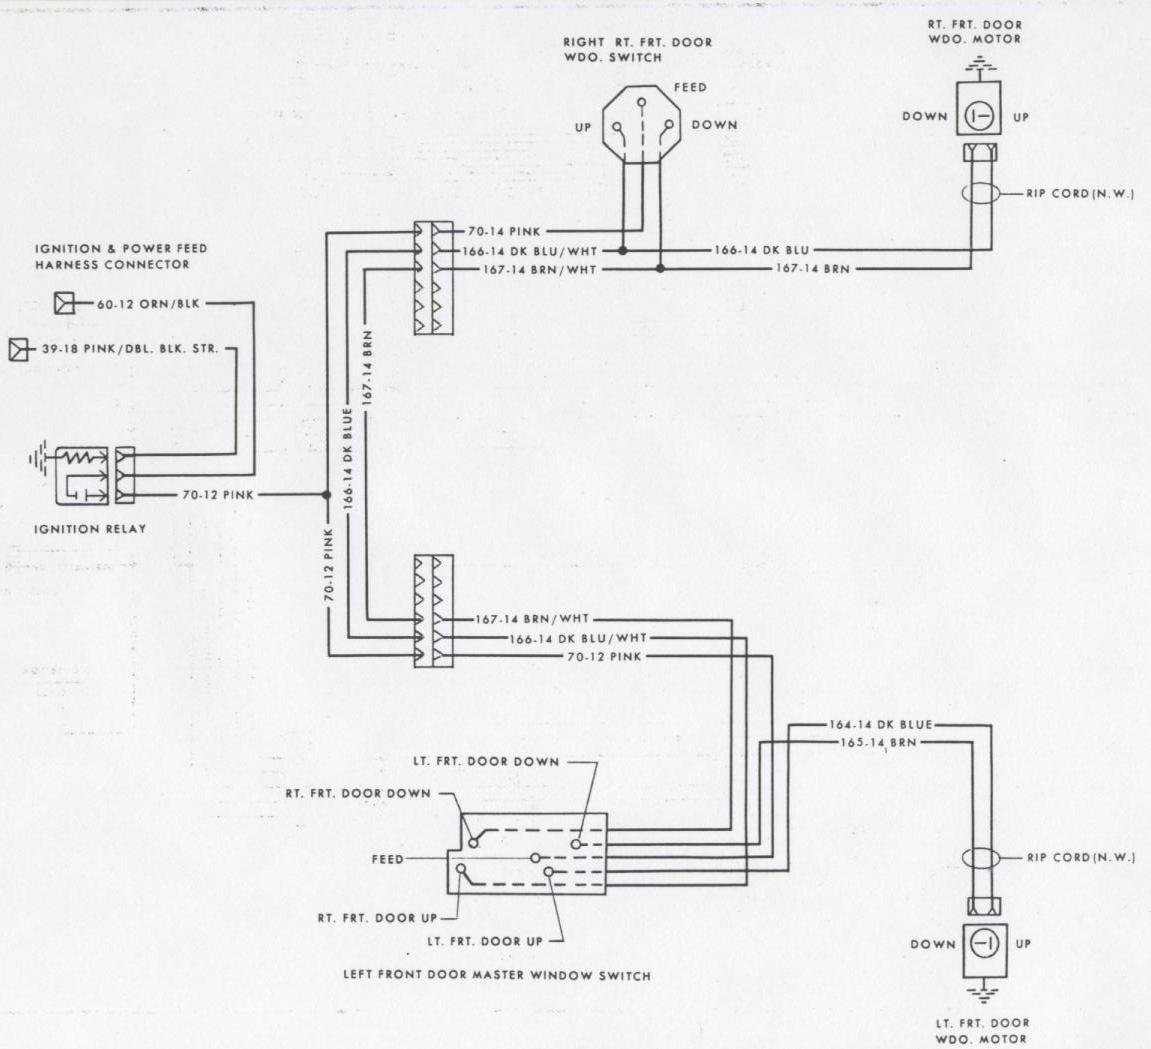 1980 trans am wiring diagram